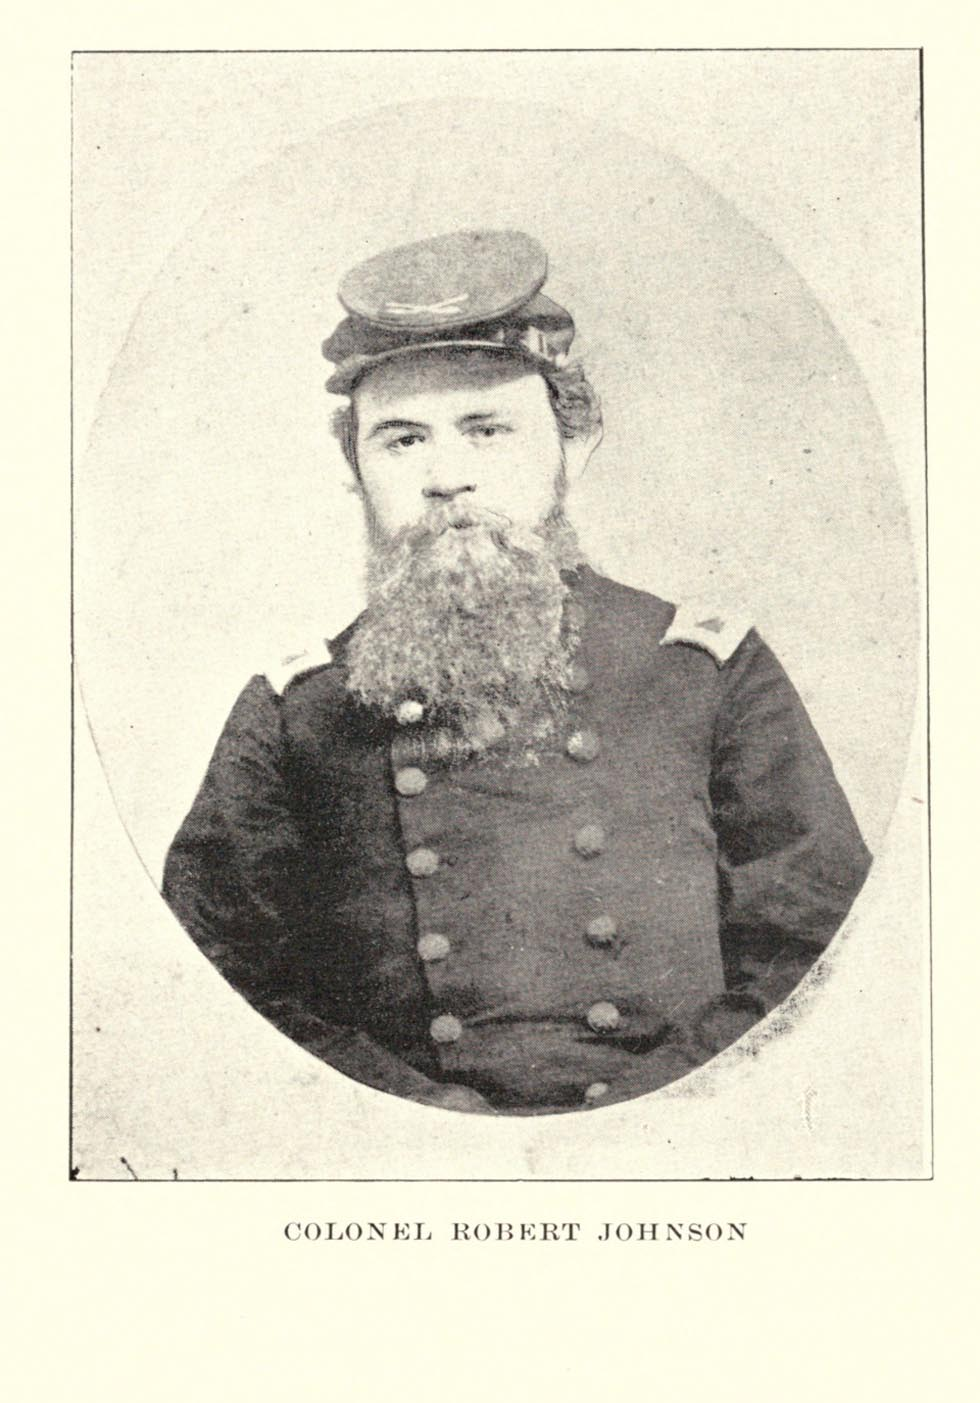 Colonel Robert Johnson - 1st Regiment East Tennessee Volunteer Calvary